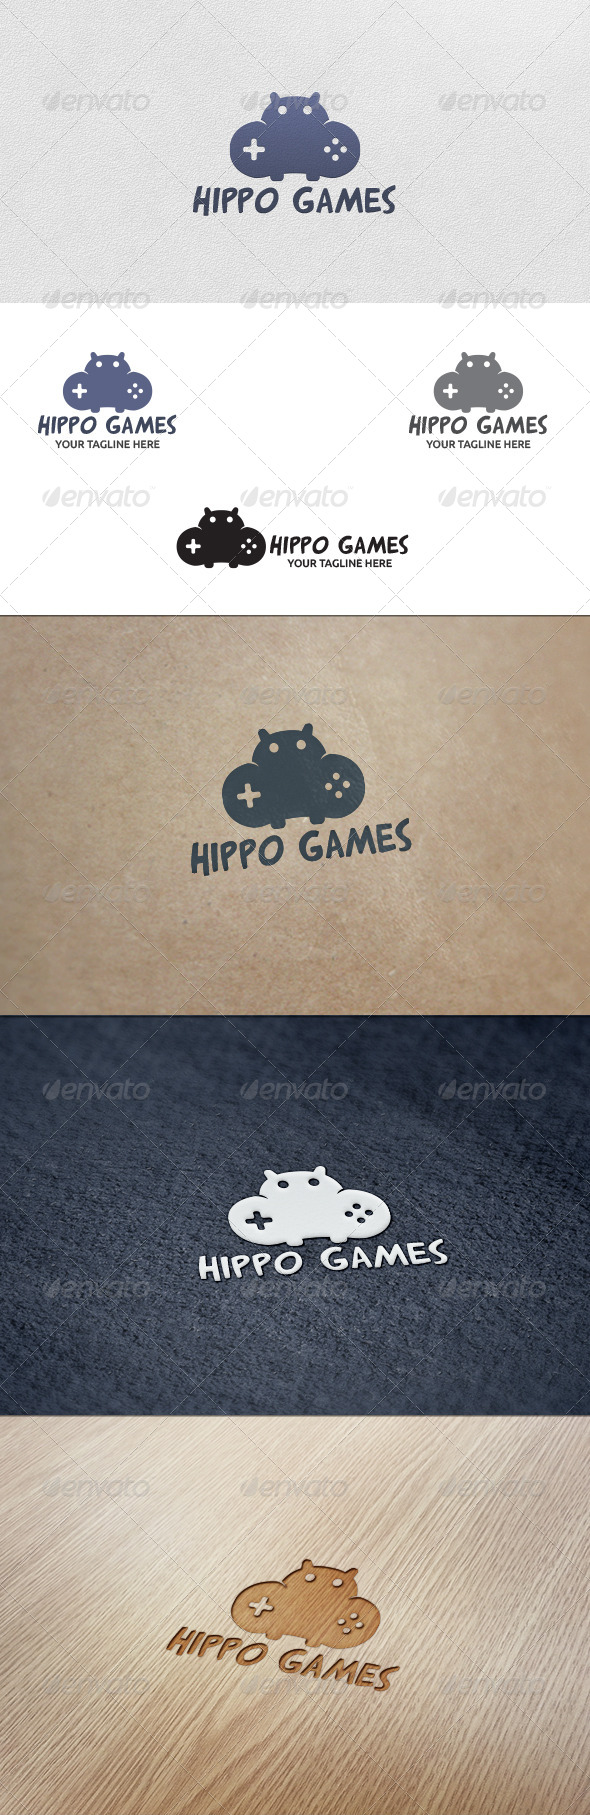 GraphicRiver Hippo Games Logo Template 5568659